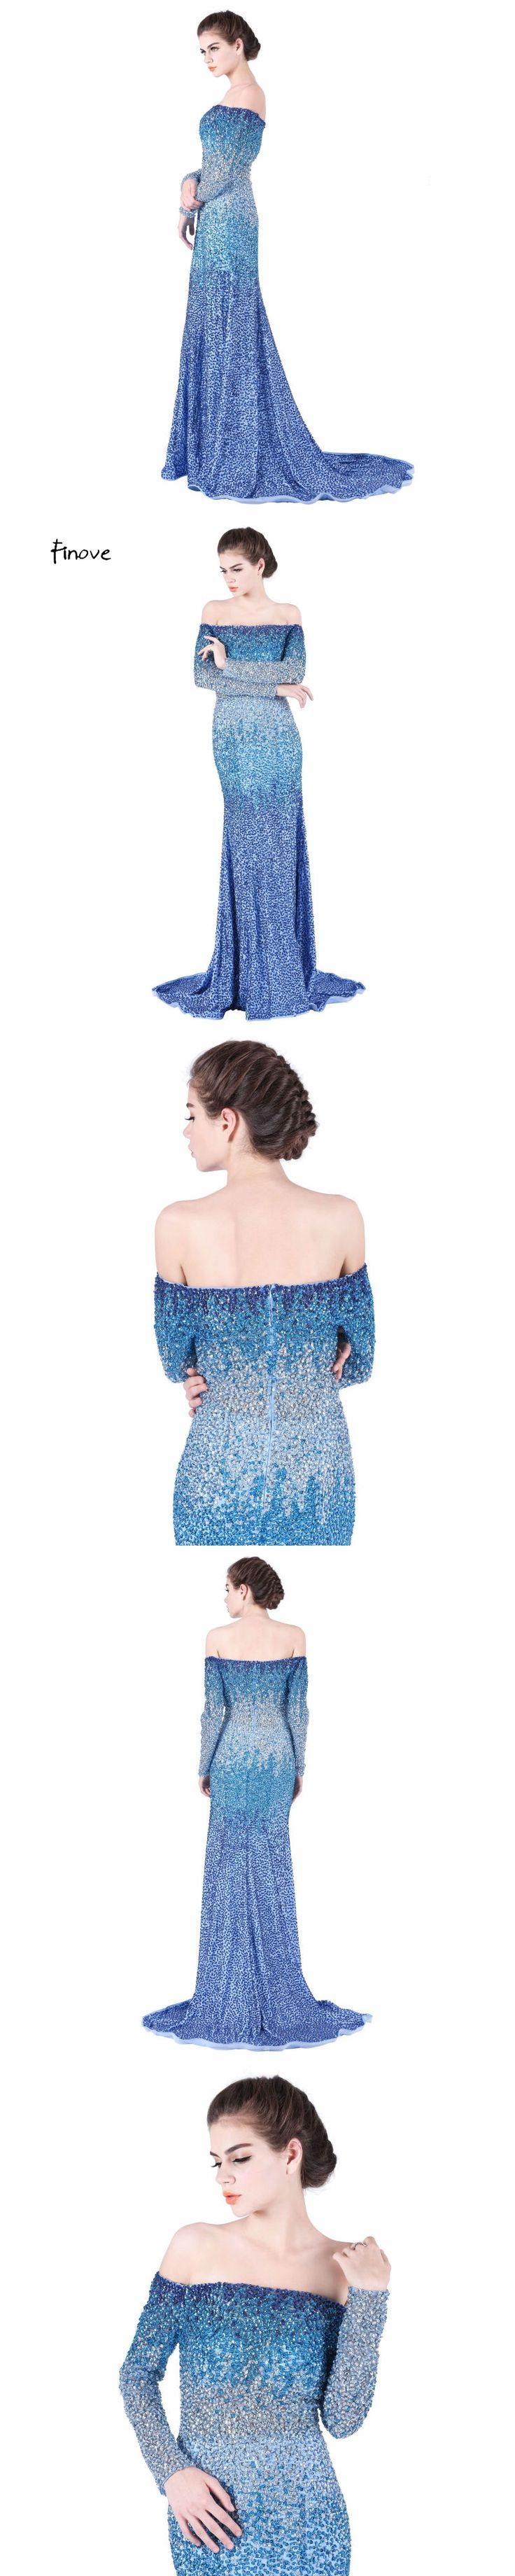 Dazzling Boat-neck Sexy Design Evening Dresses Long Heavy Beaded Off the Shoulder Full Sleeve Royal Blue Mermaid Prom Dress Part